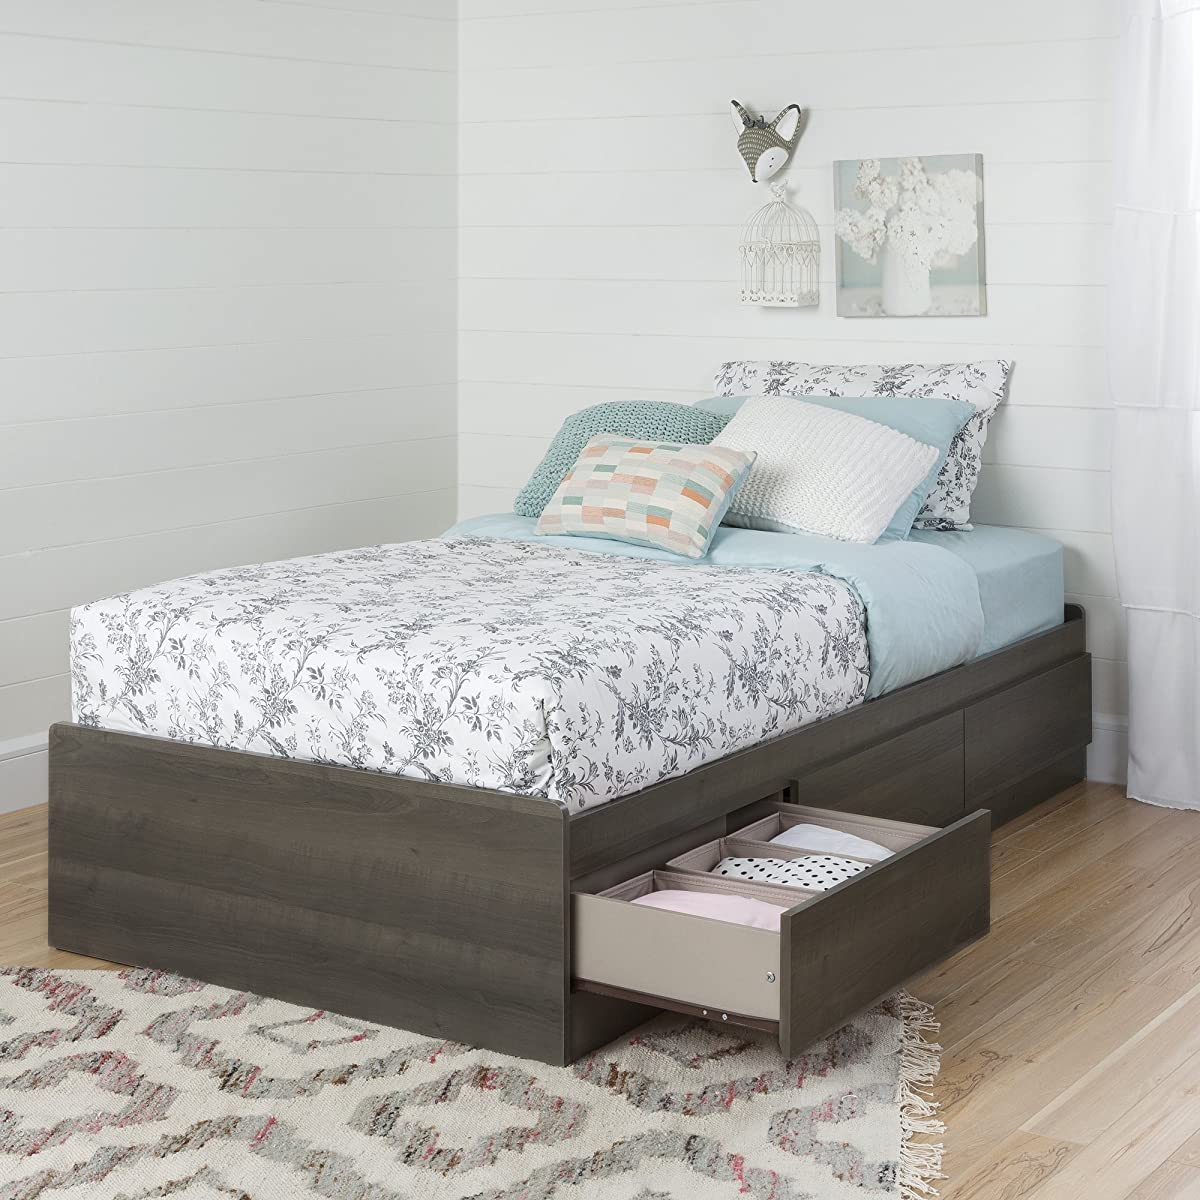 """South Shore Savannah 39"""" Mates Bed with 3-Drawers, Twin, Gray Maple"""